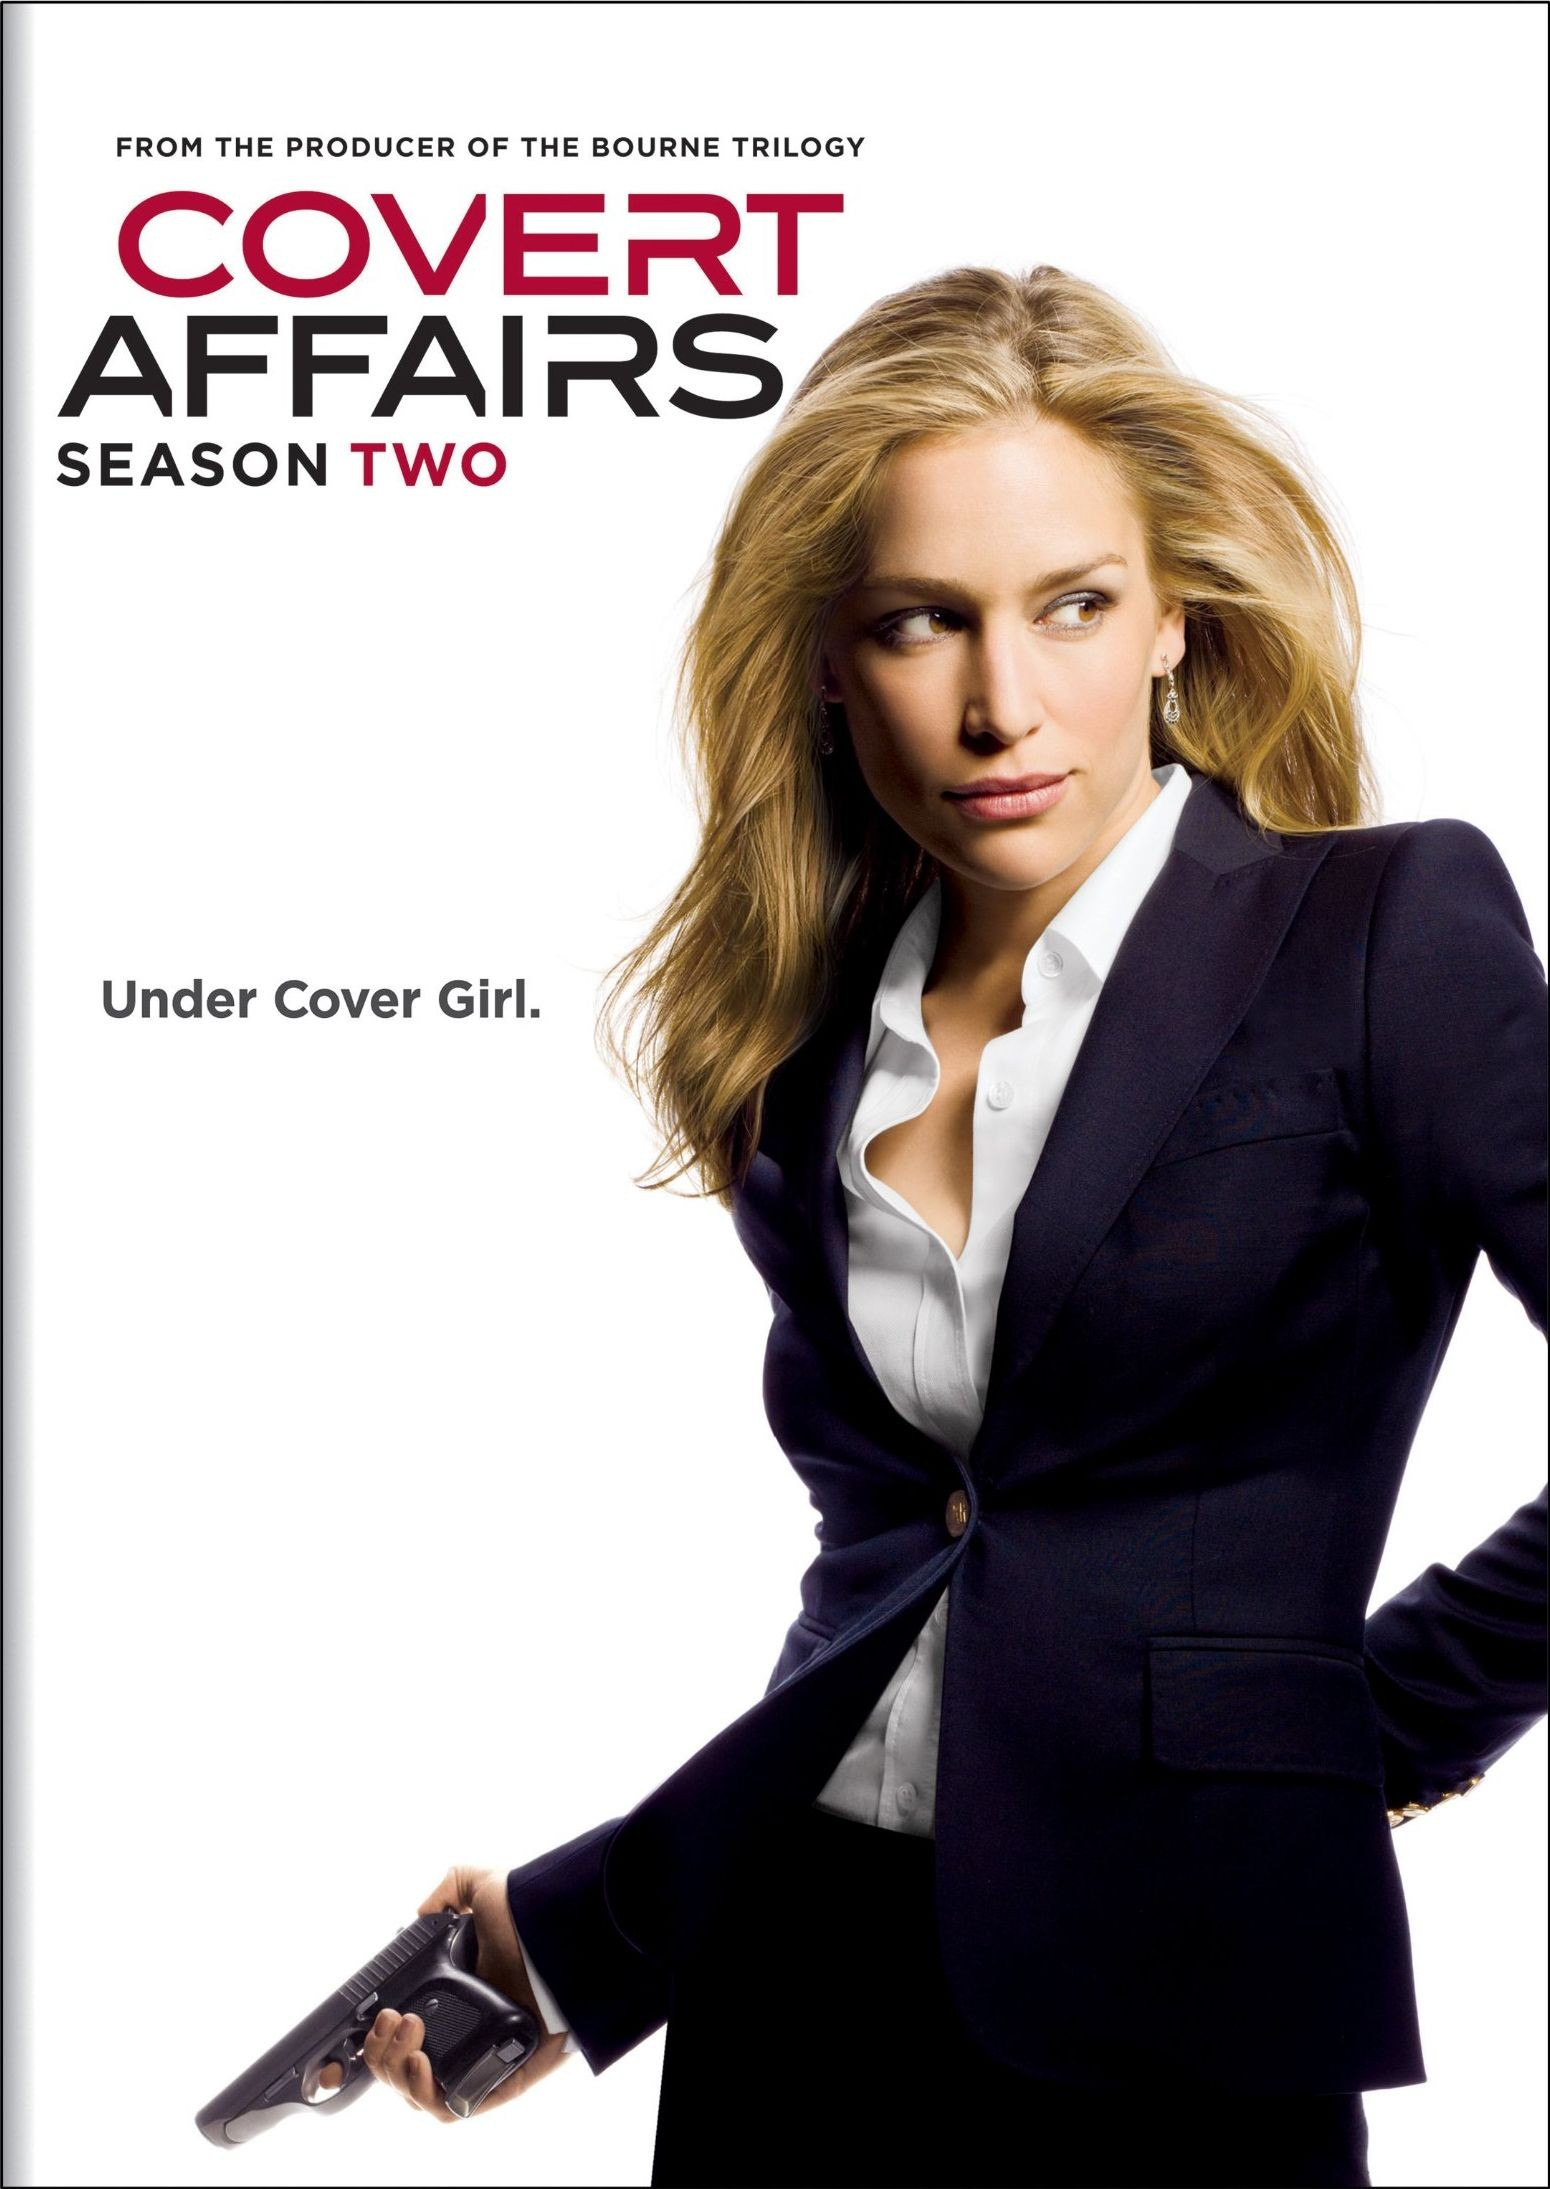 covert-affairs-season-two-dvd-cover-18